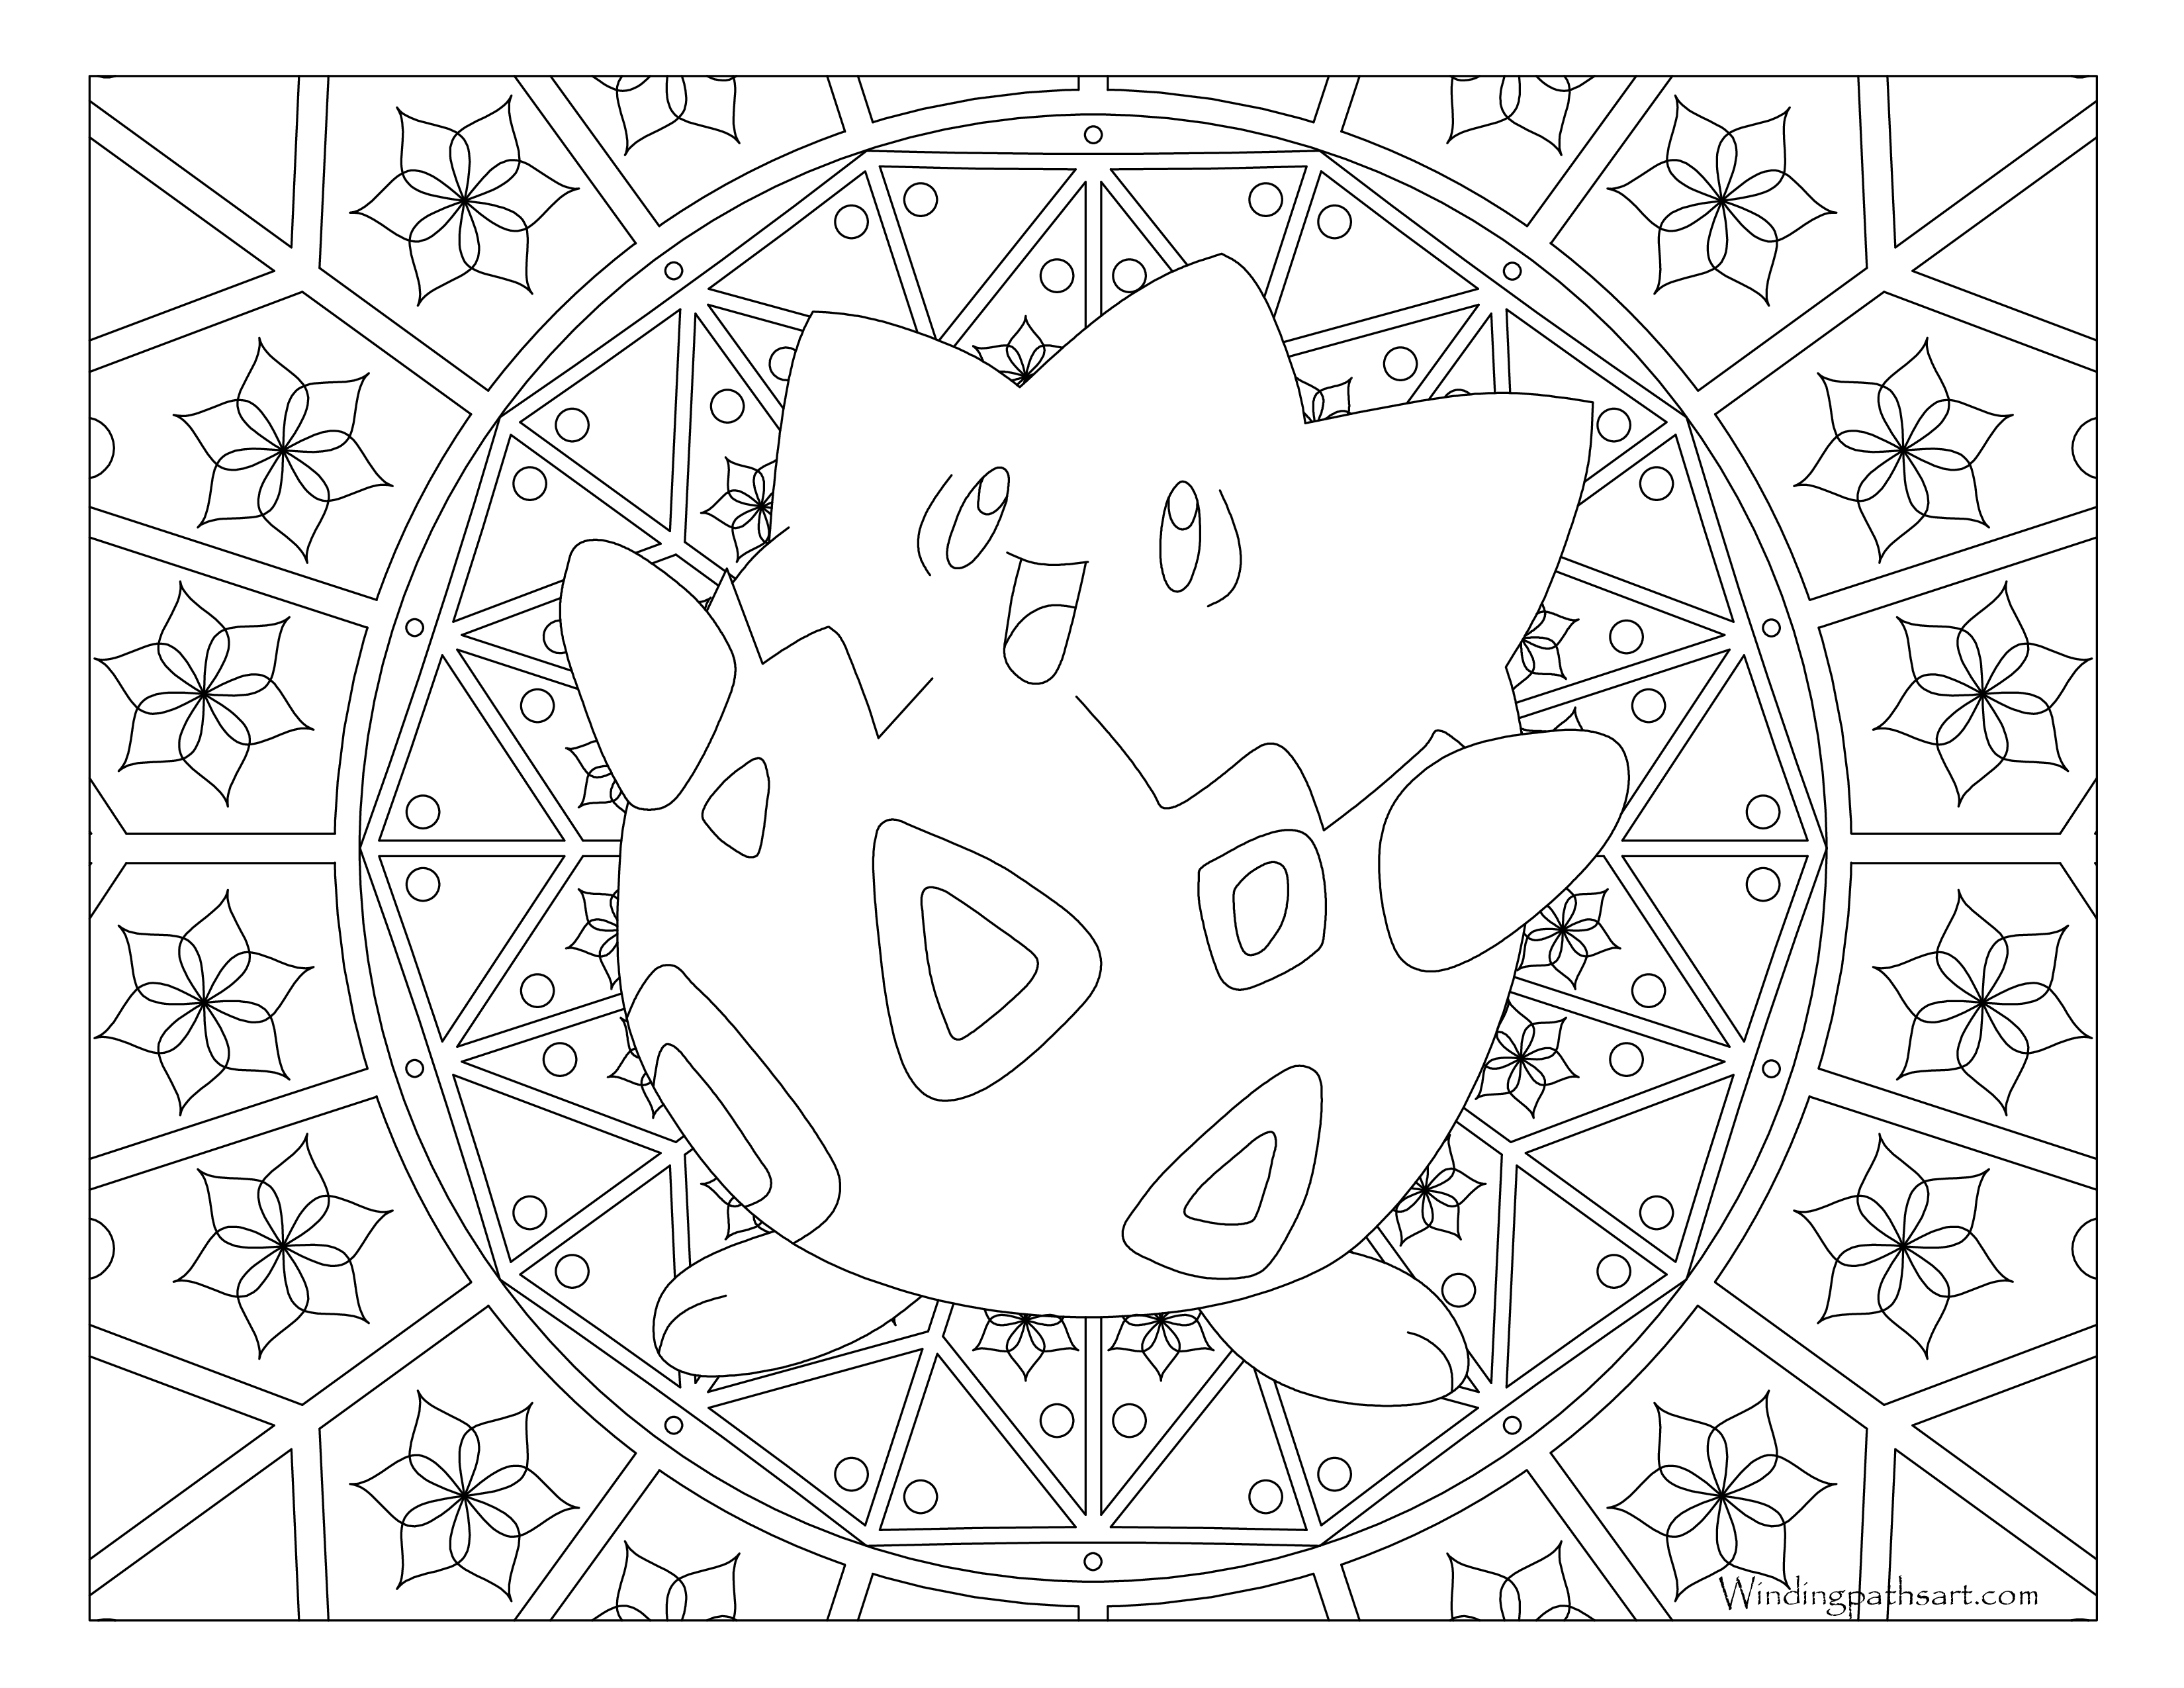 Togepi drawing. Pokemon coloring page